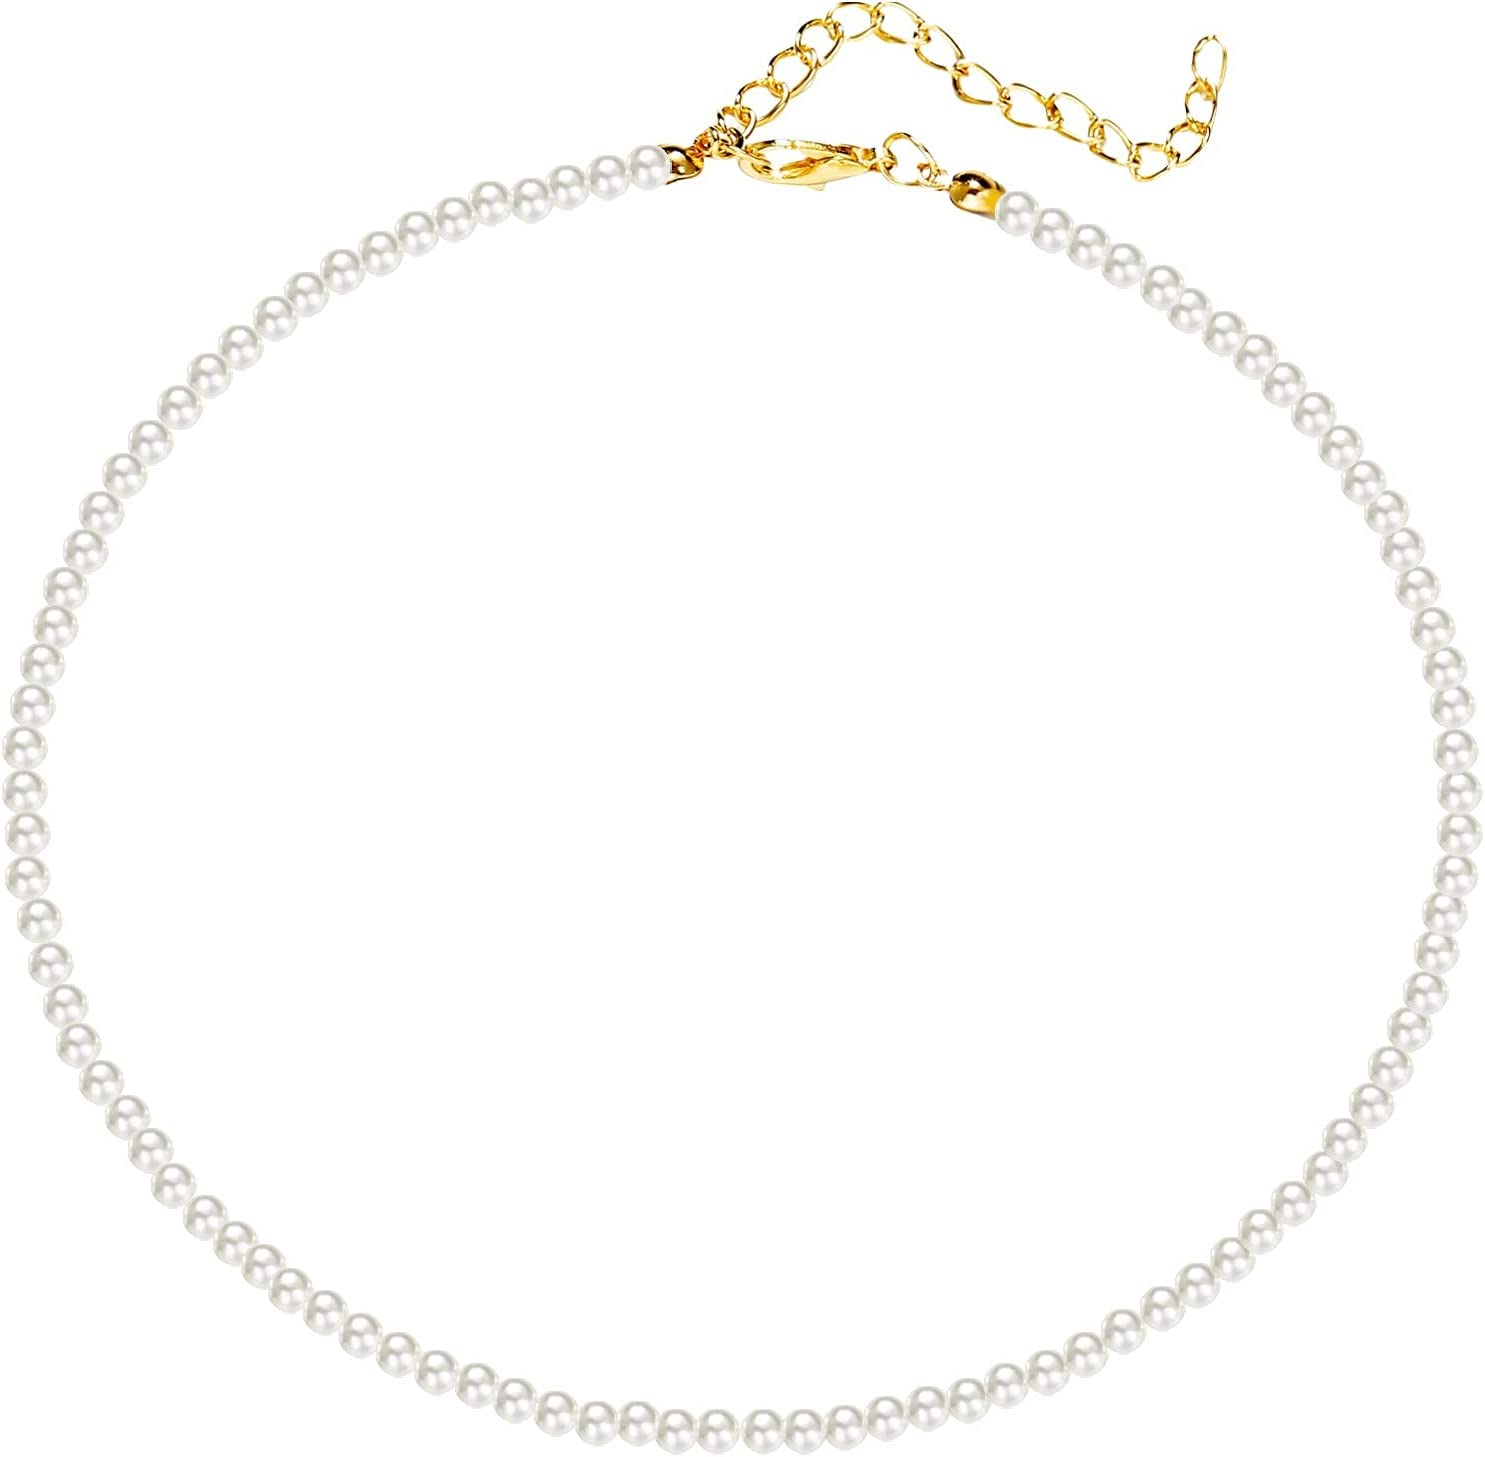 Gold Plated Pendant Necklace,Adjustable Vintage Imitation Pearl Beaded Choker Chain Necklaces Collar Clavicle Chain Multilayer Initial Diamonds For Women Charm Gifts (white, 15.1